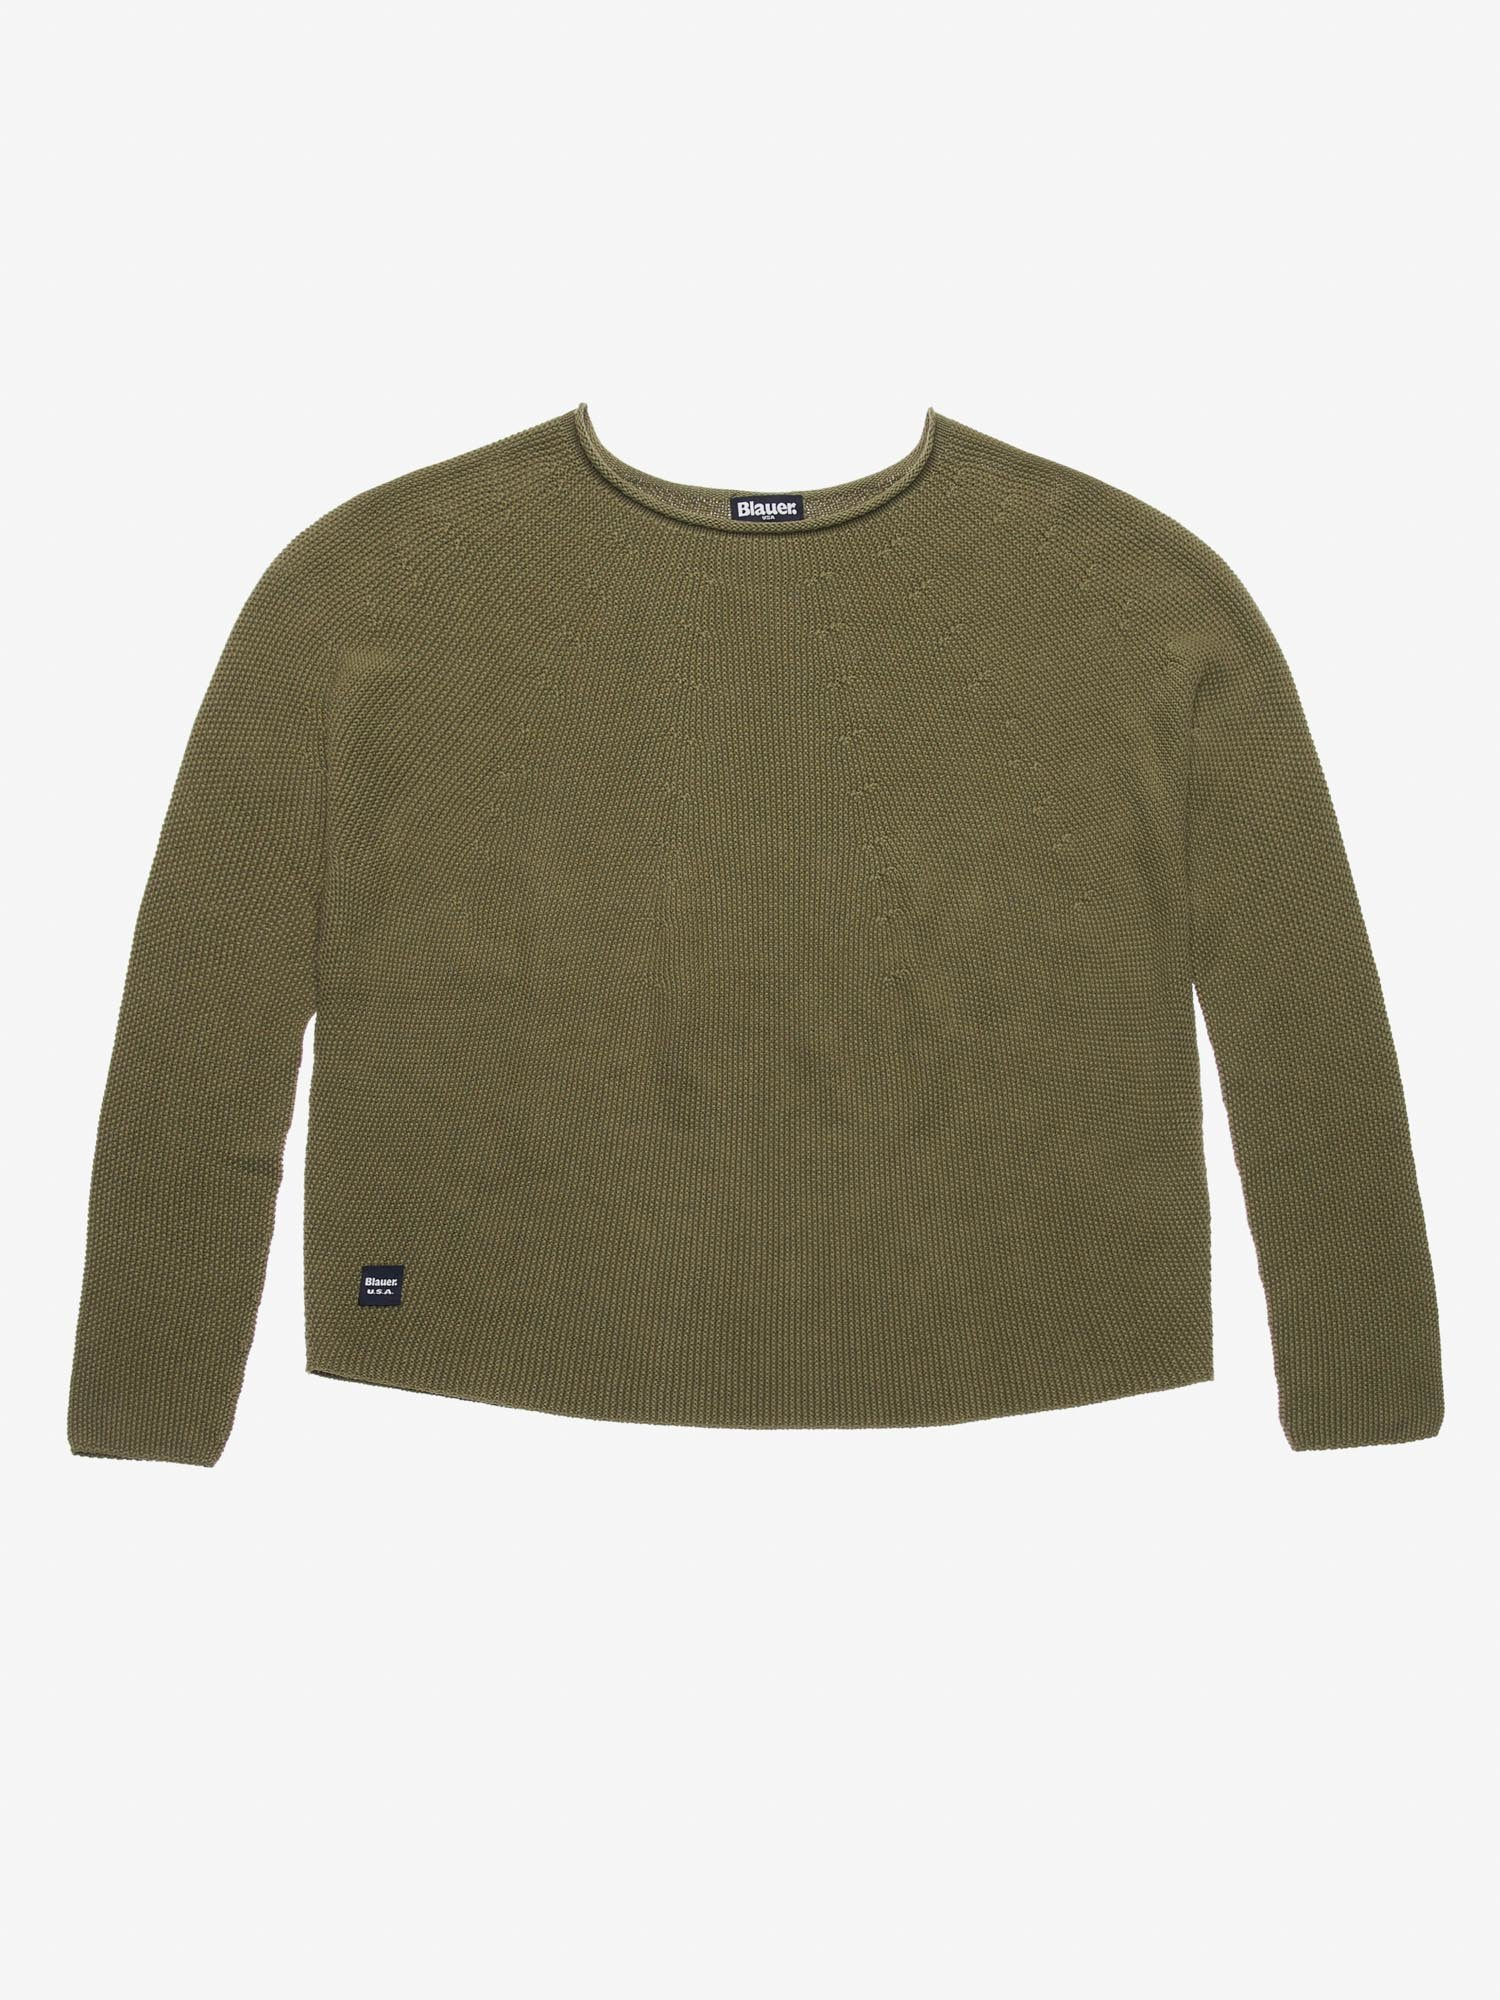 SHORT CREW NECK SWEATER - Blauer